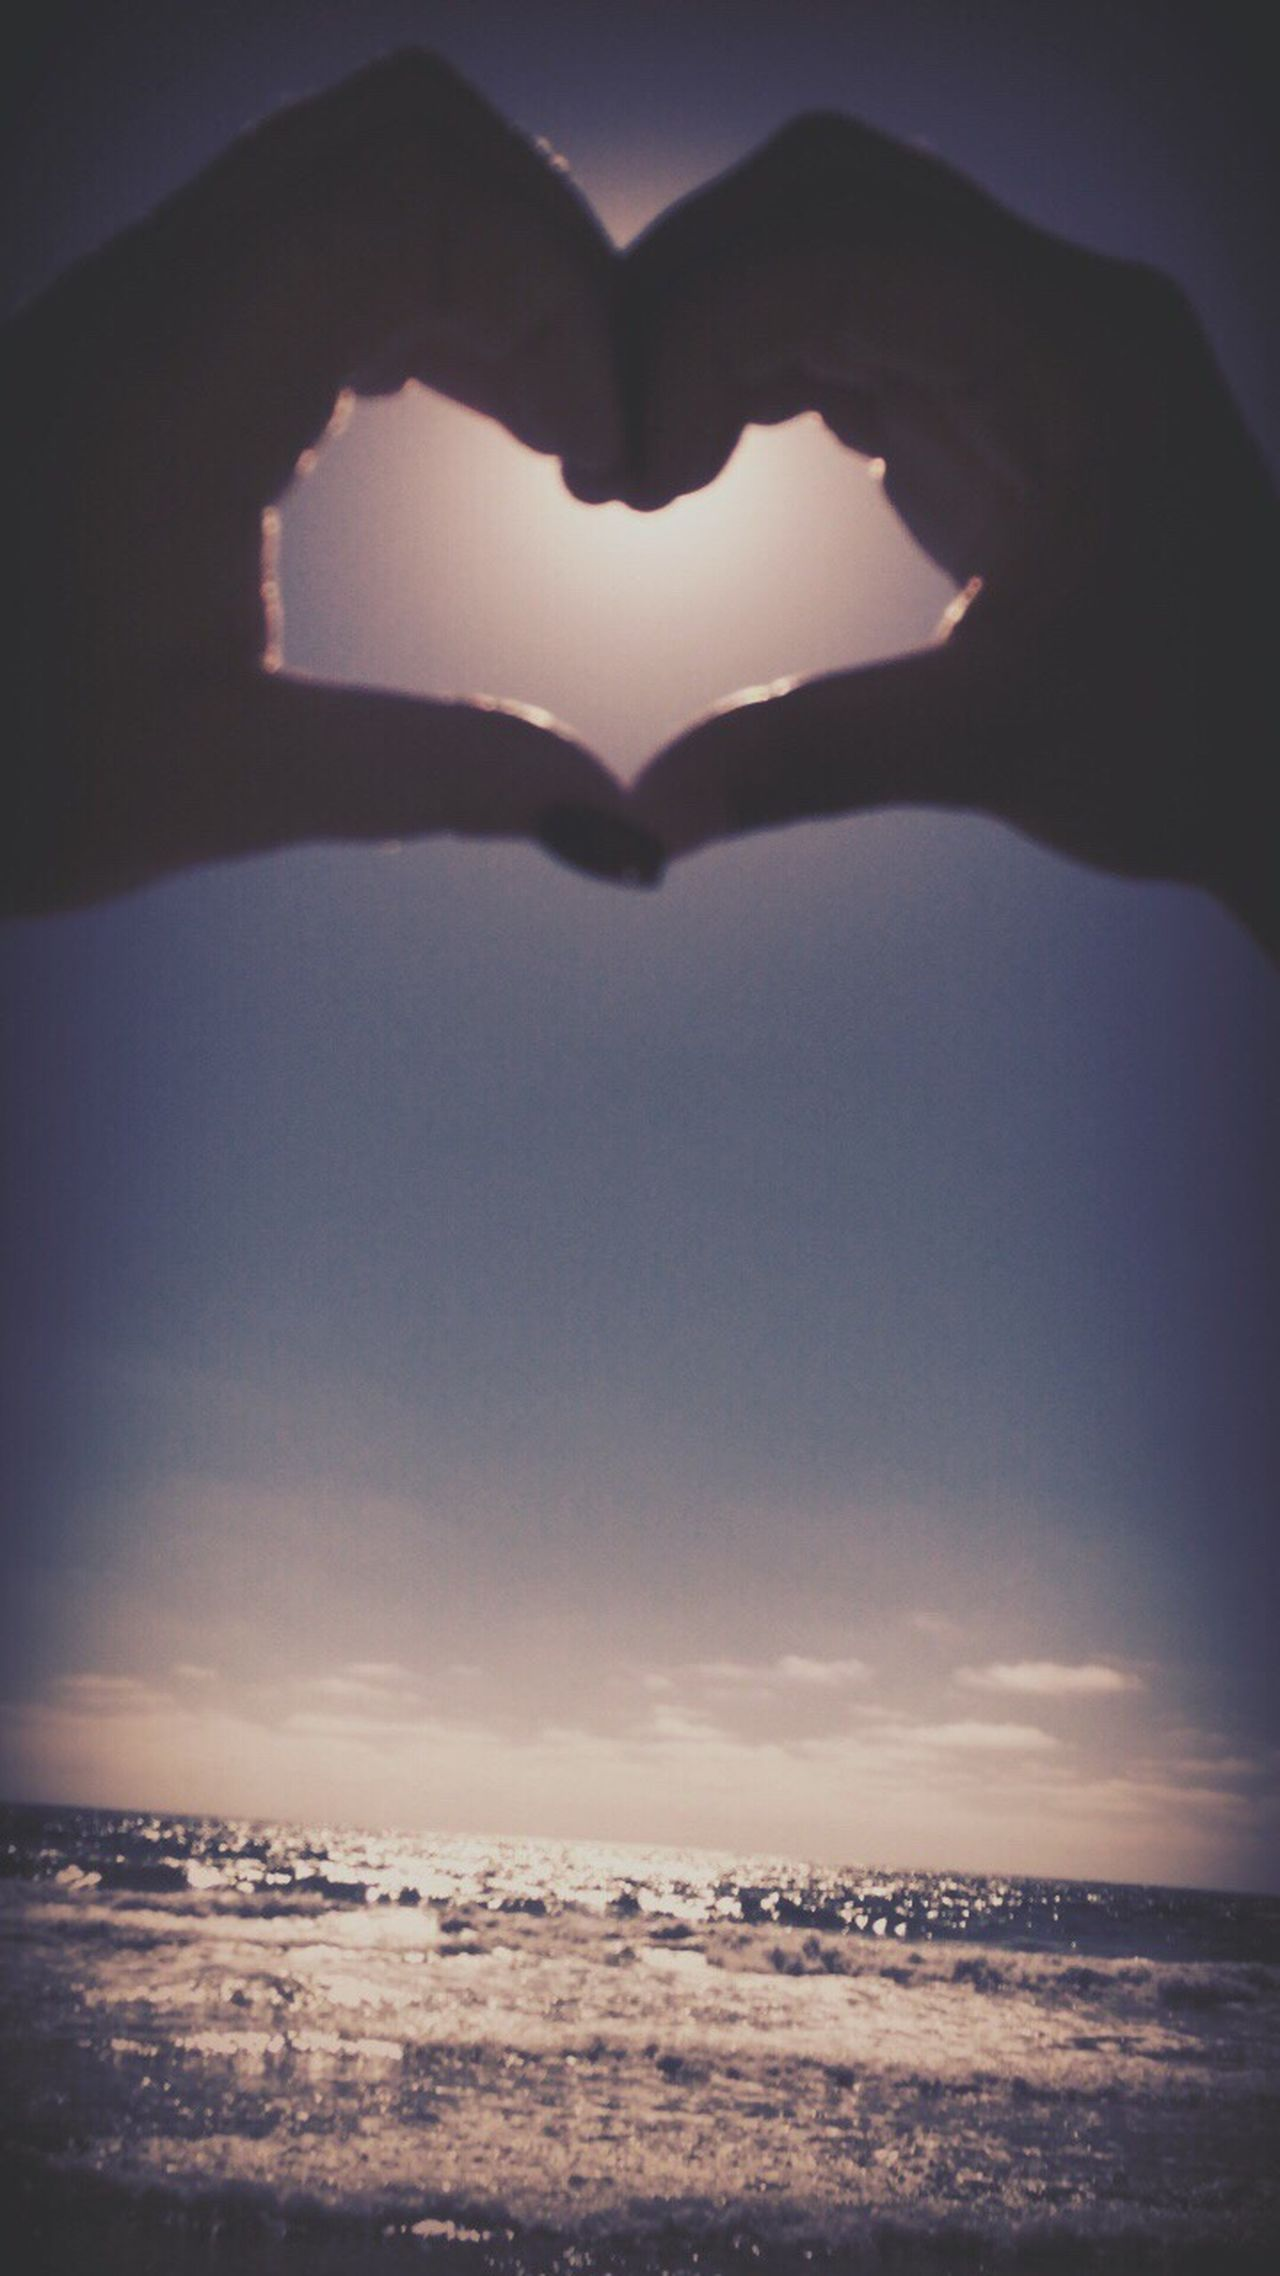 Heart Shape Forming Human Hand Love Sky Sunset Sea Scenics Human Body Part Nature Outdoors Beauty In Nature Water Real People Horizon Over Water Close-up Day One Person People